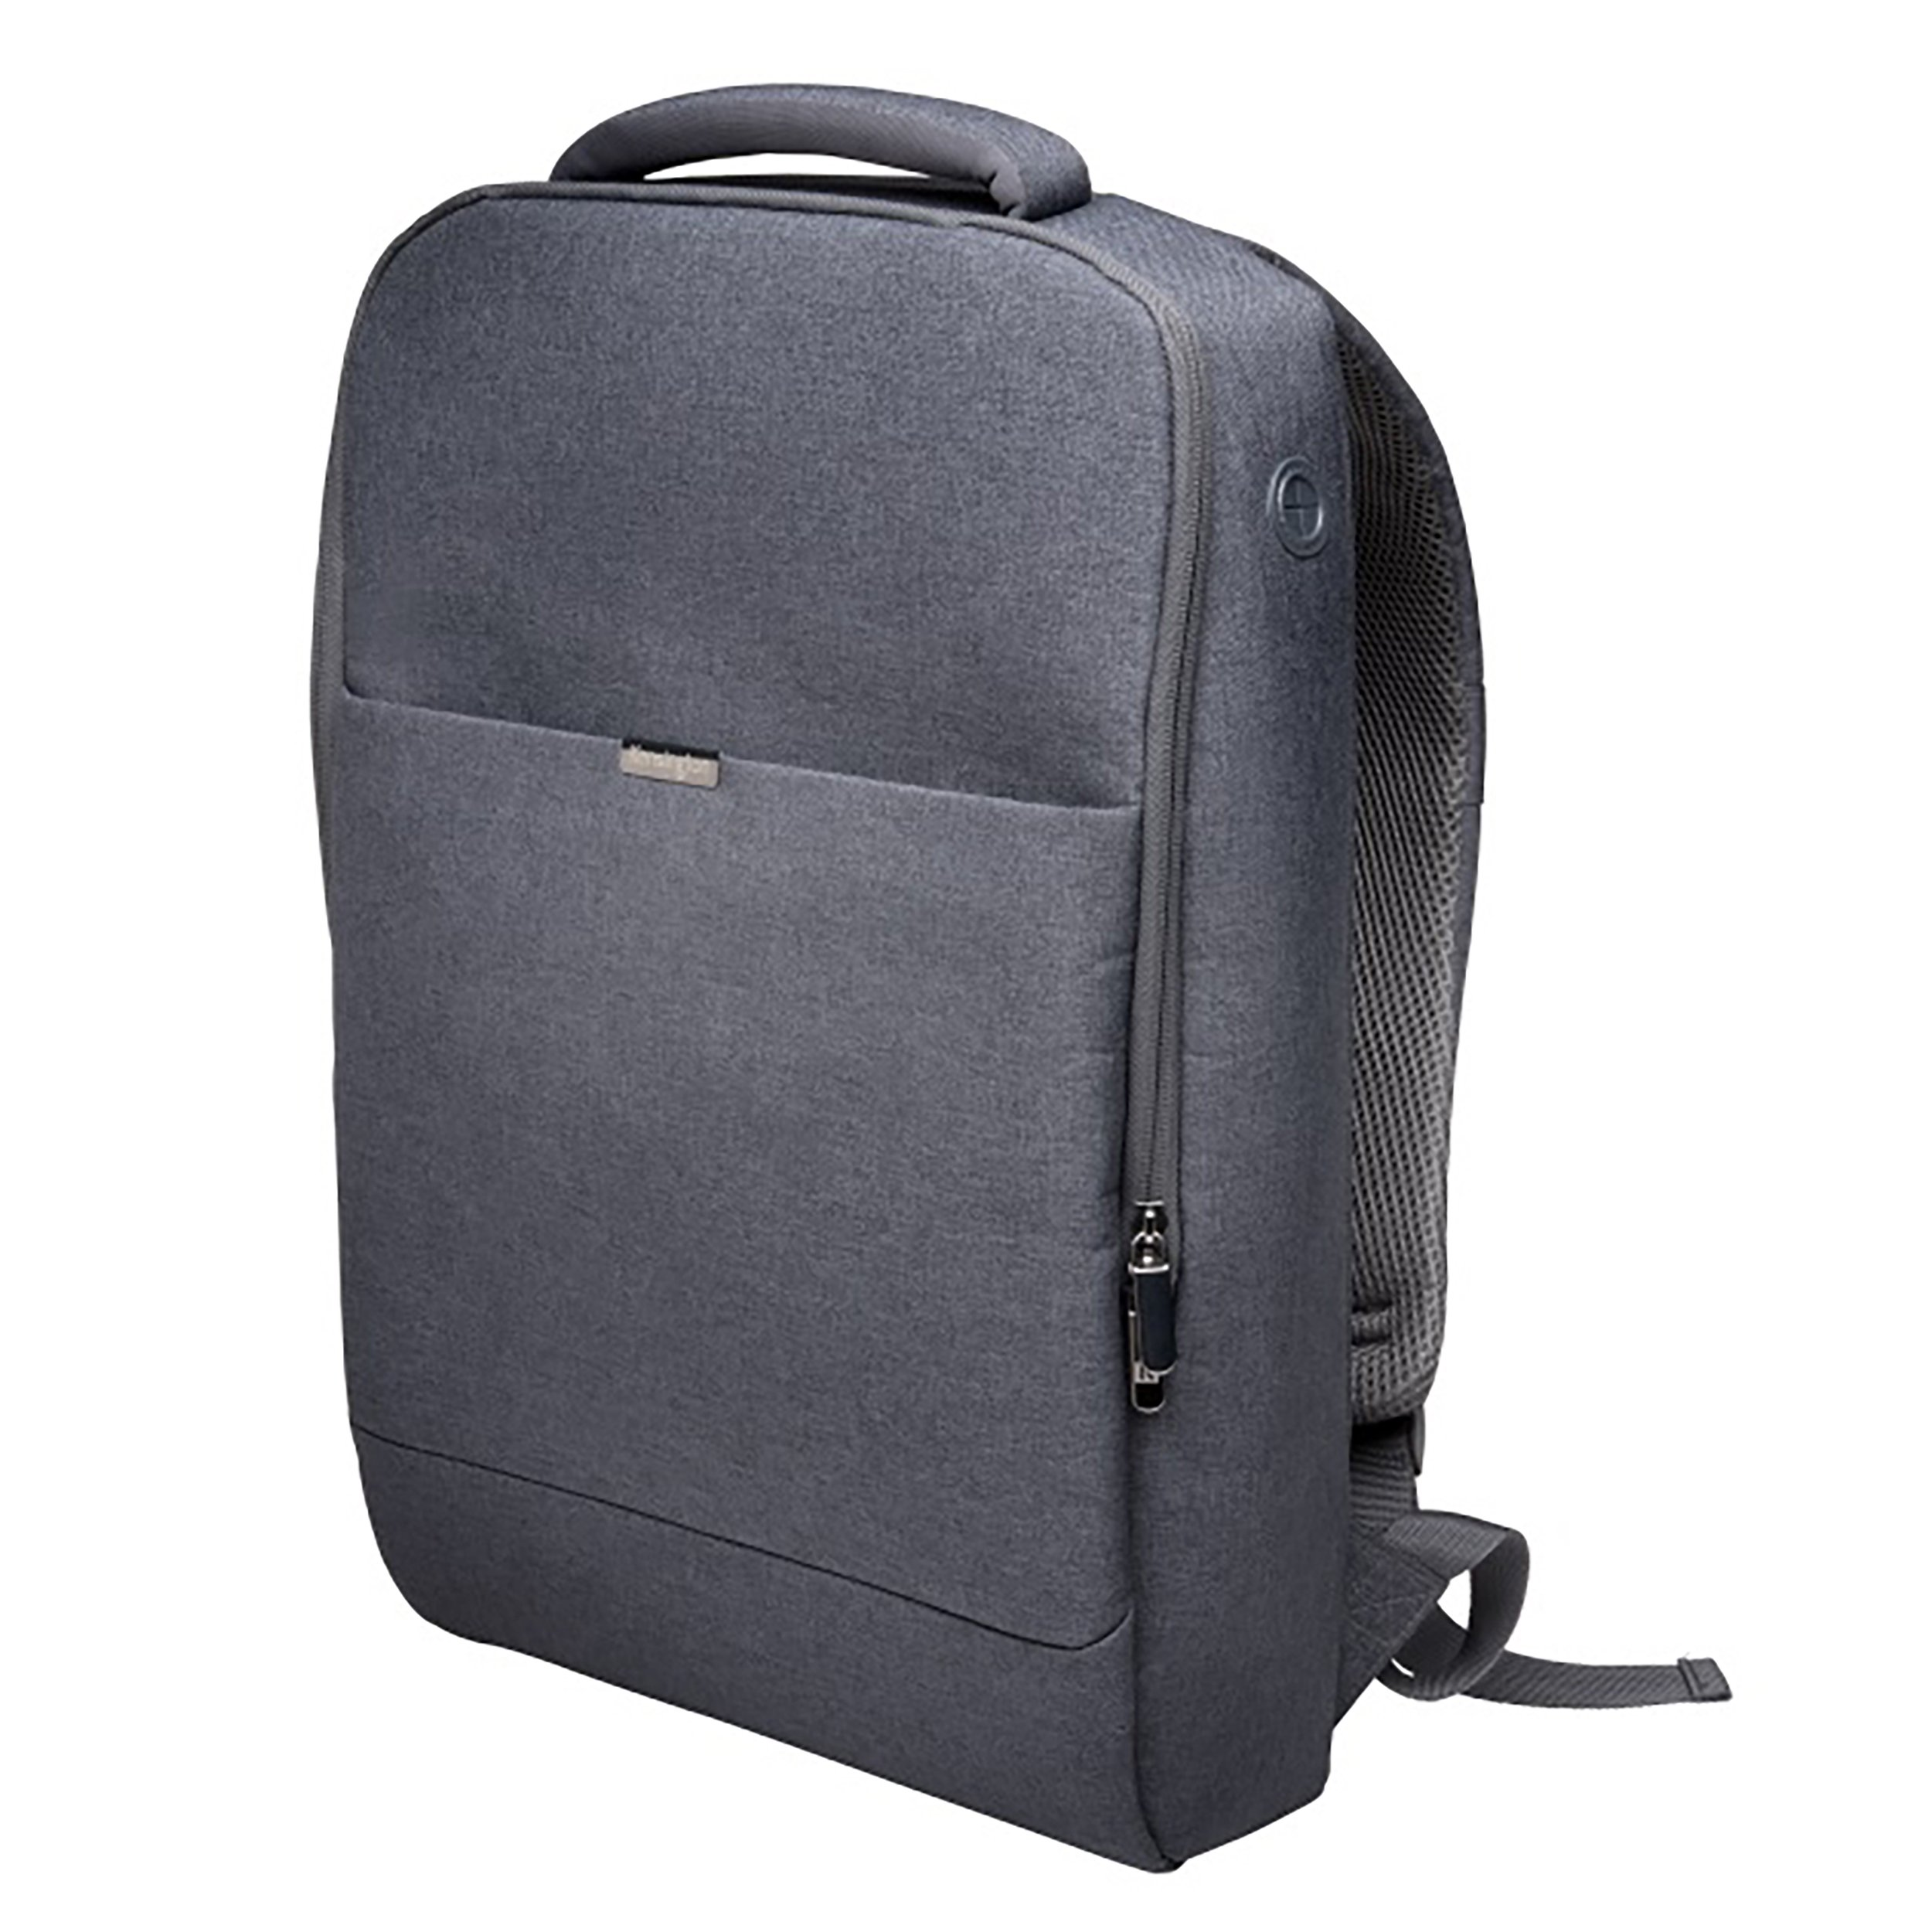 Kensington LM150 Laptop Case Backpack 15.6-Inch (K62622WW) - Cool Grey